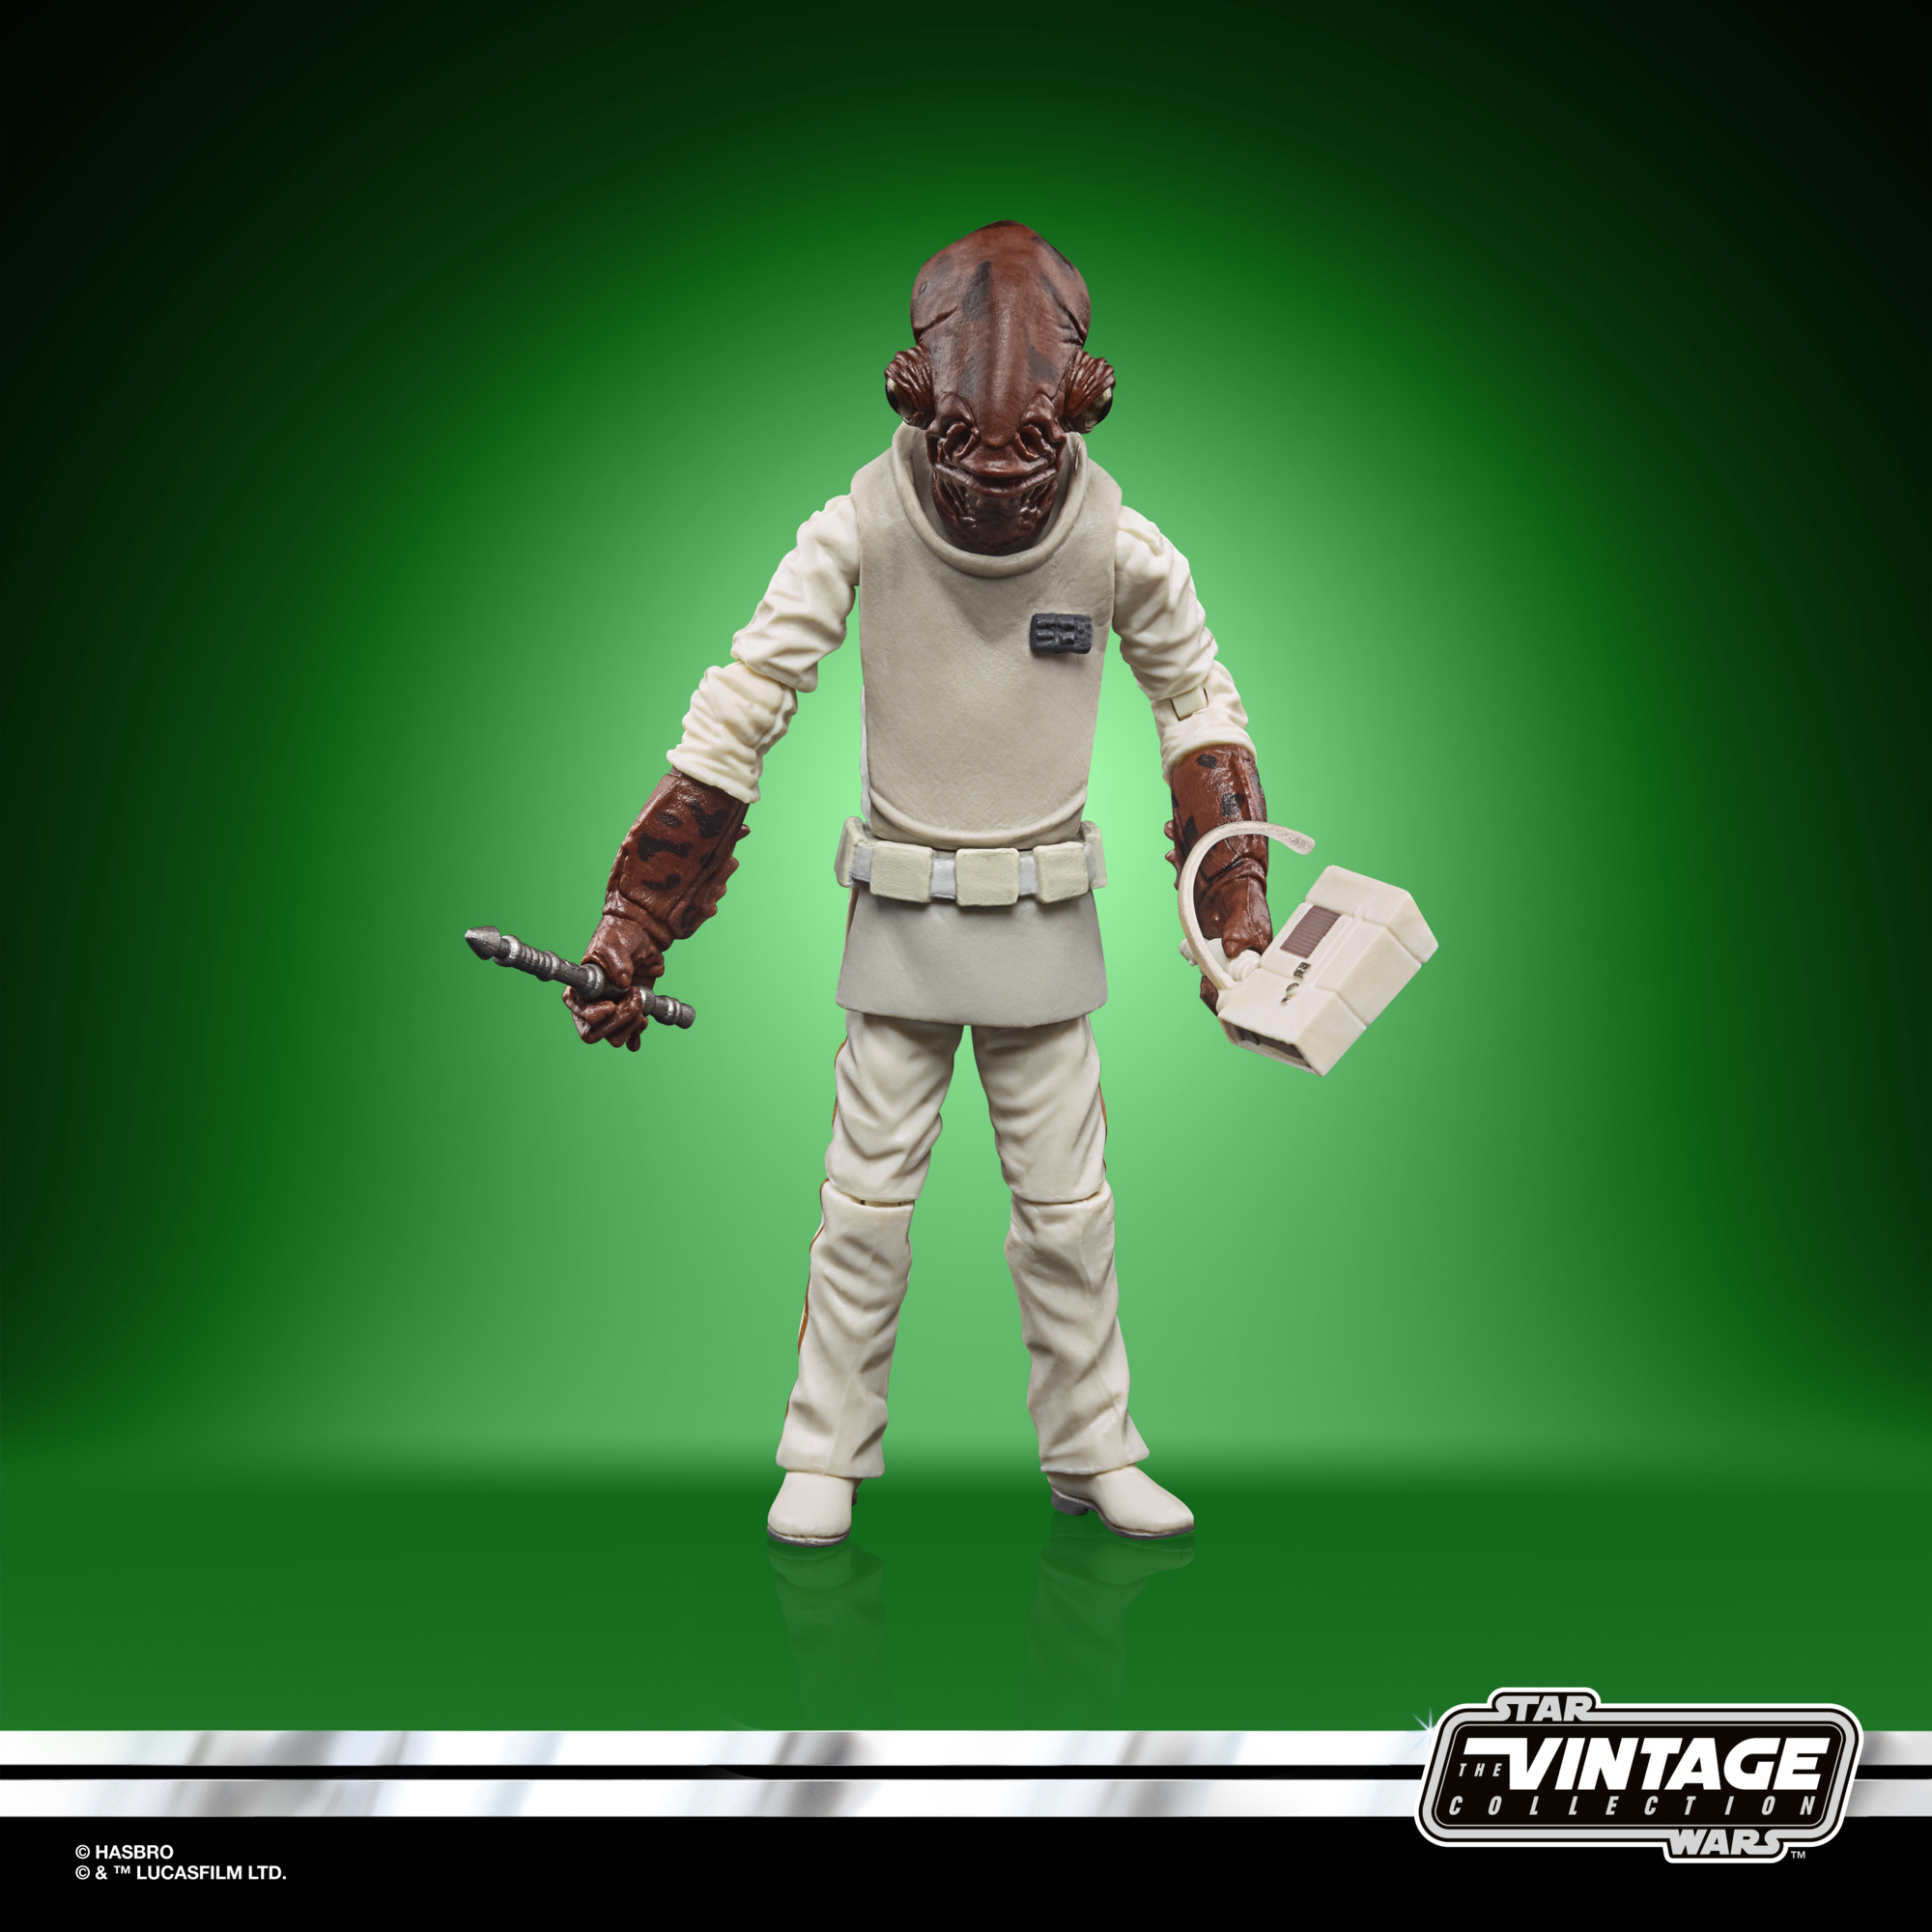 STAR WARS THE VINTAGE COLLECTION 3.75-INCH ADMIRAL ACKBAR Figure – oop(2)